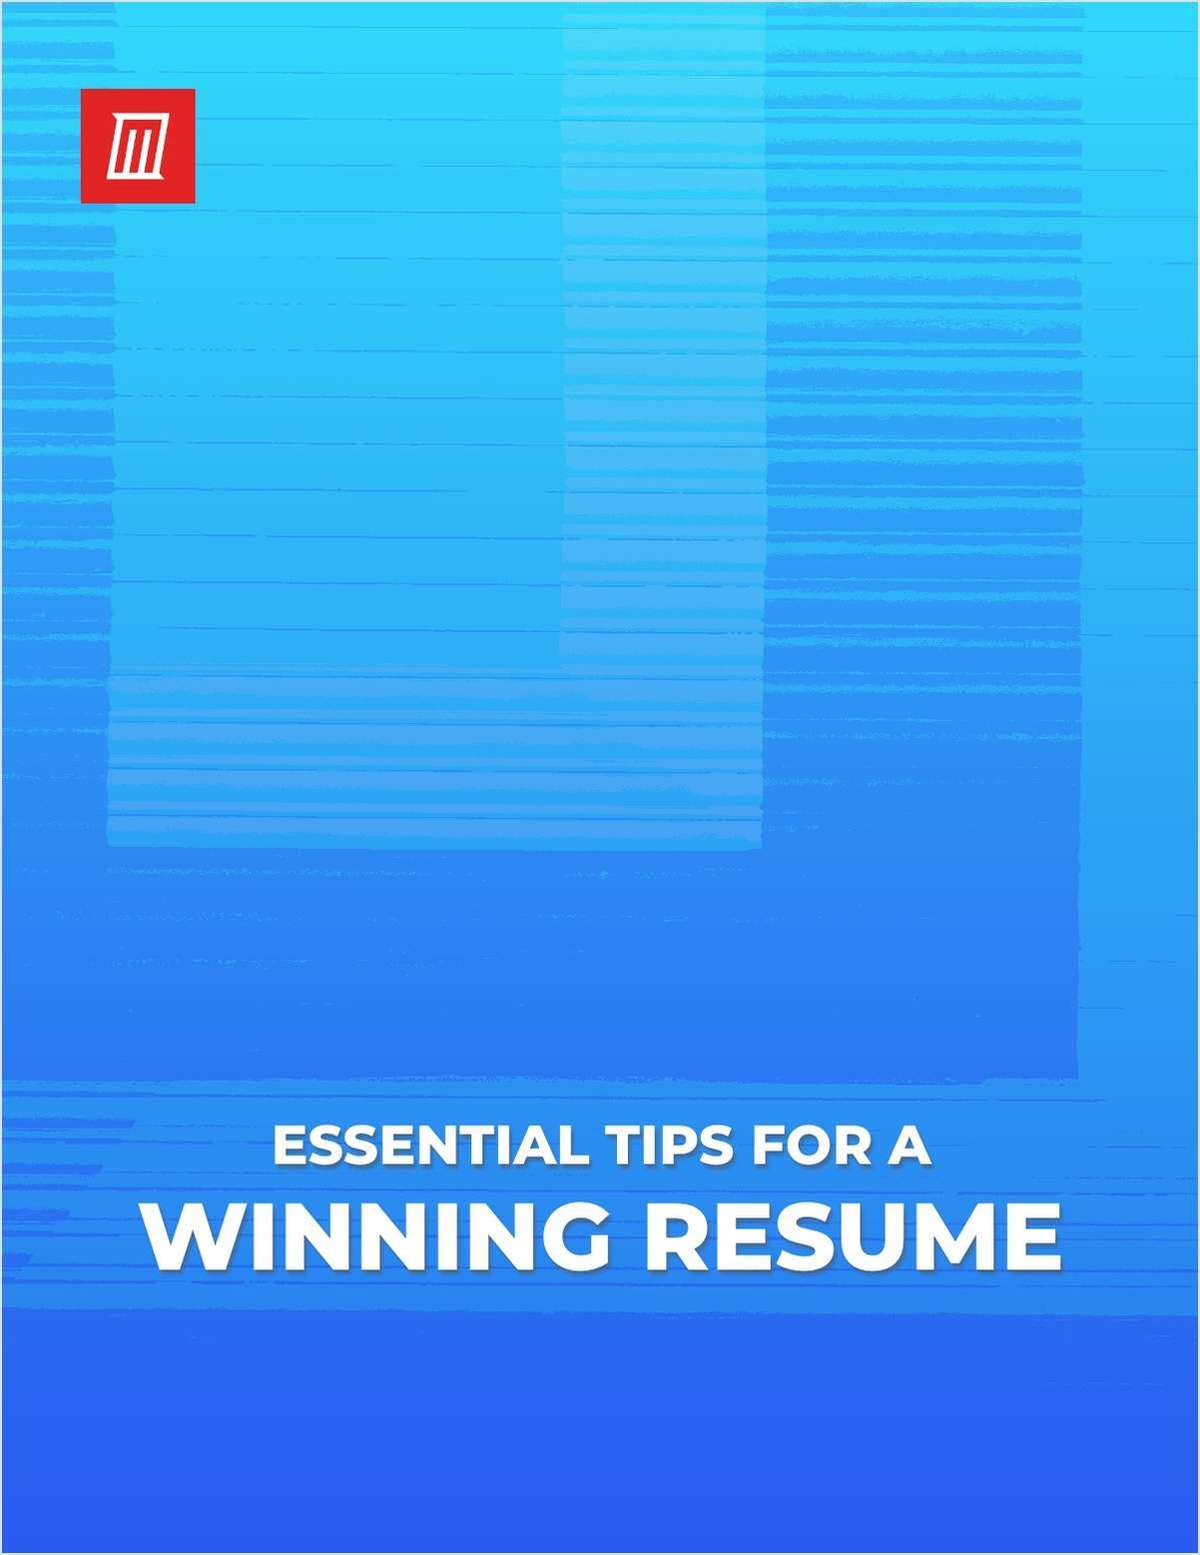 Essential Tips for a Winning Resume